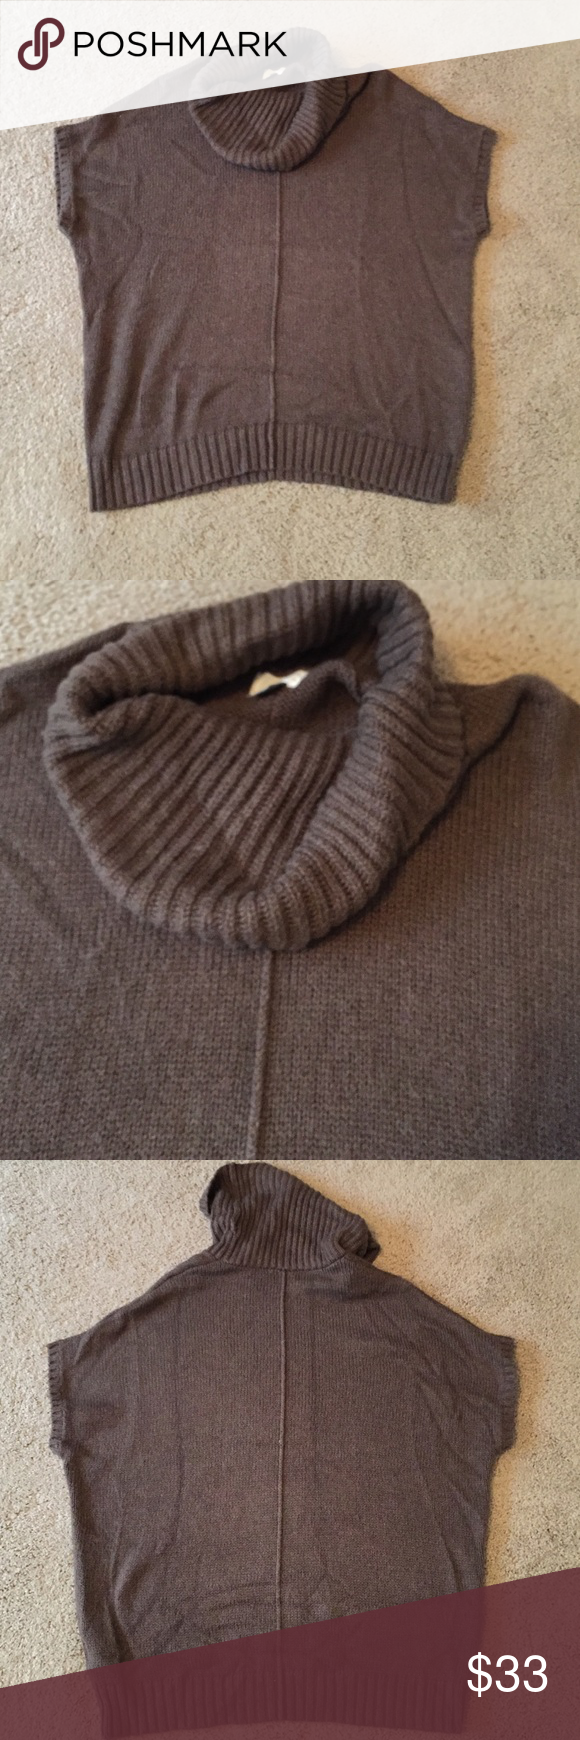 Chocolate Brown Short Sleeve Cowl Neck Sweater❄ In great ...